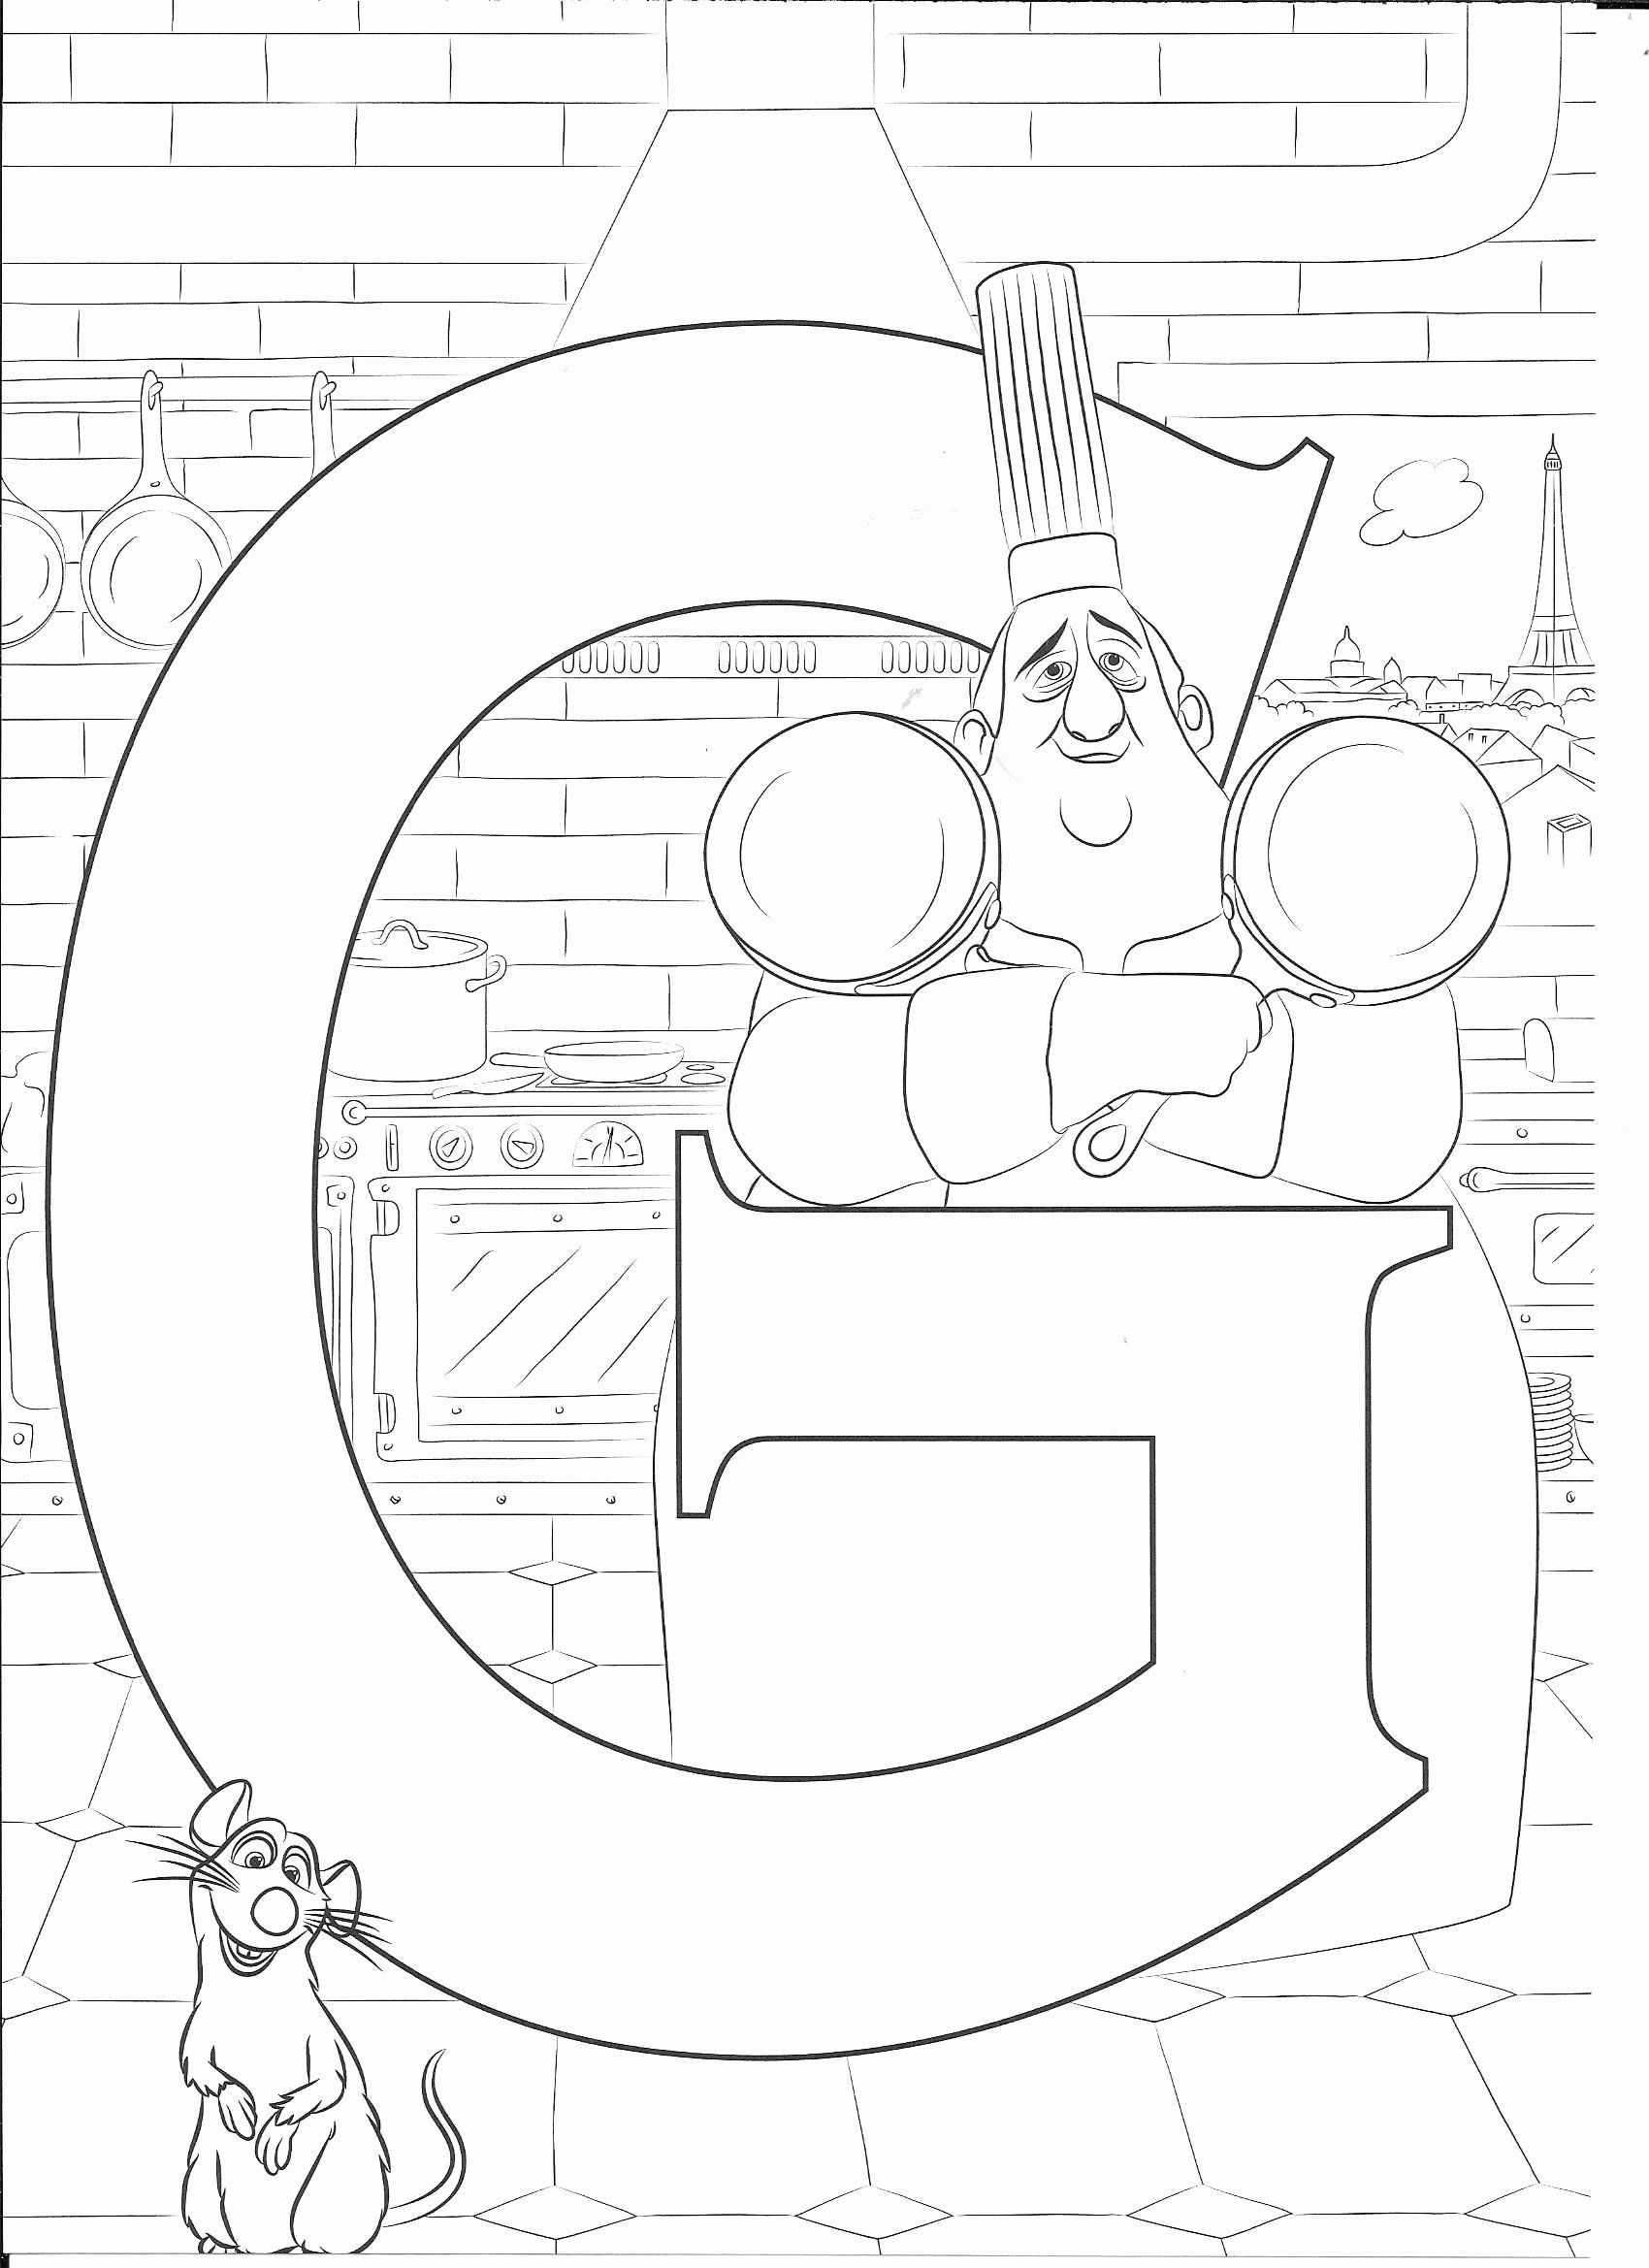 Alphabet U Coloring Pages Best Of G For Gusto Disney Abc Coloring Pages Abc Coloring Disney Coloring Pages